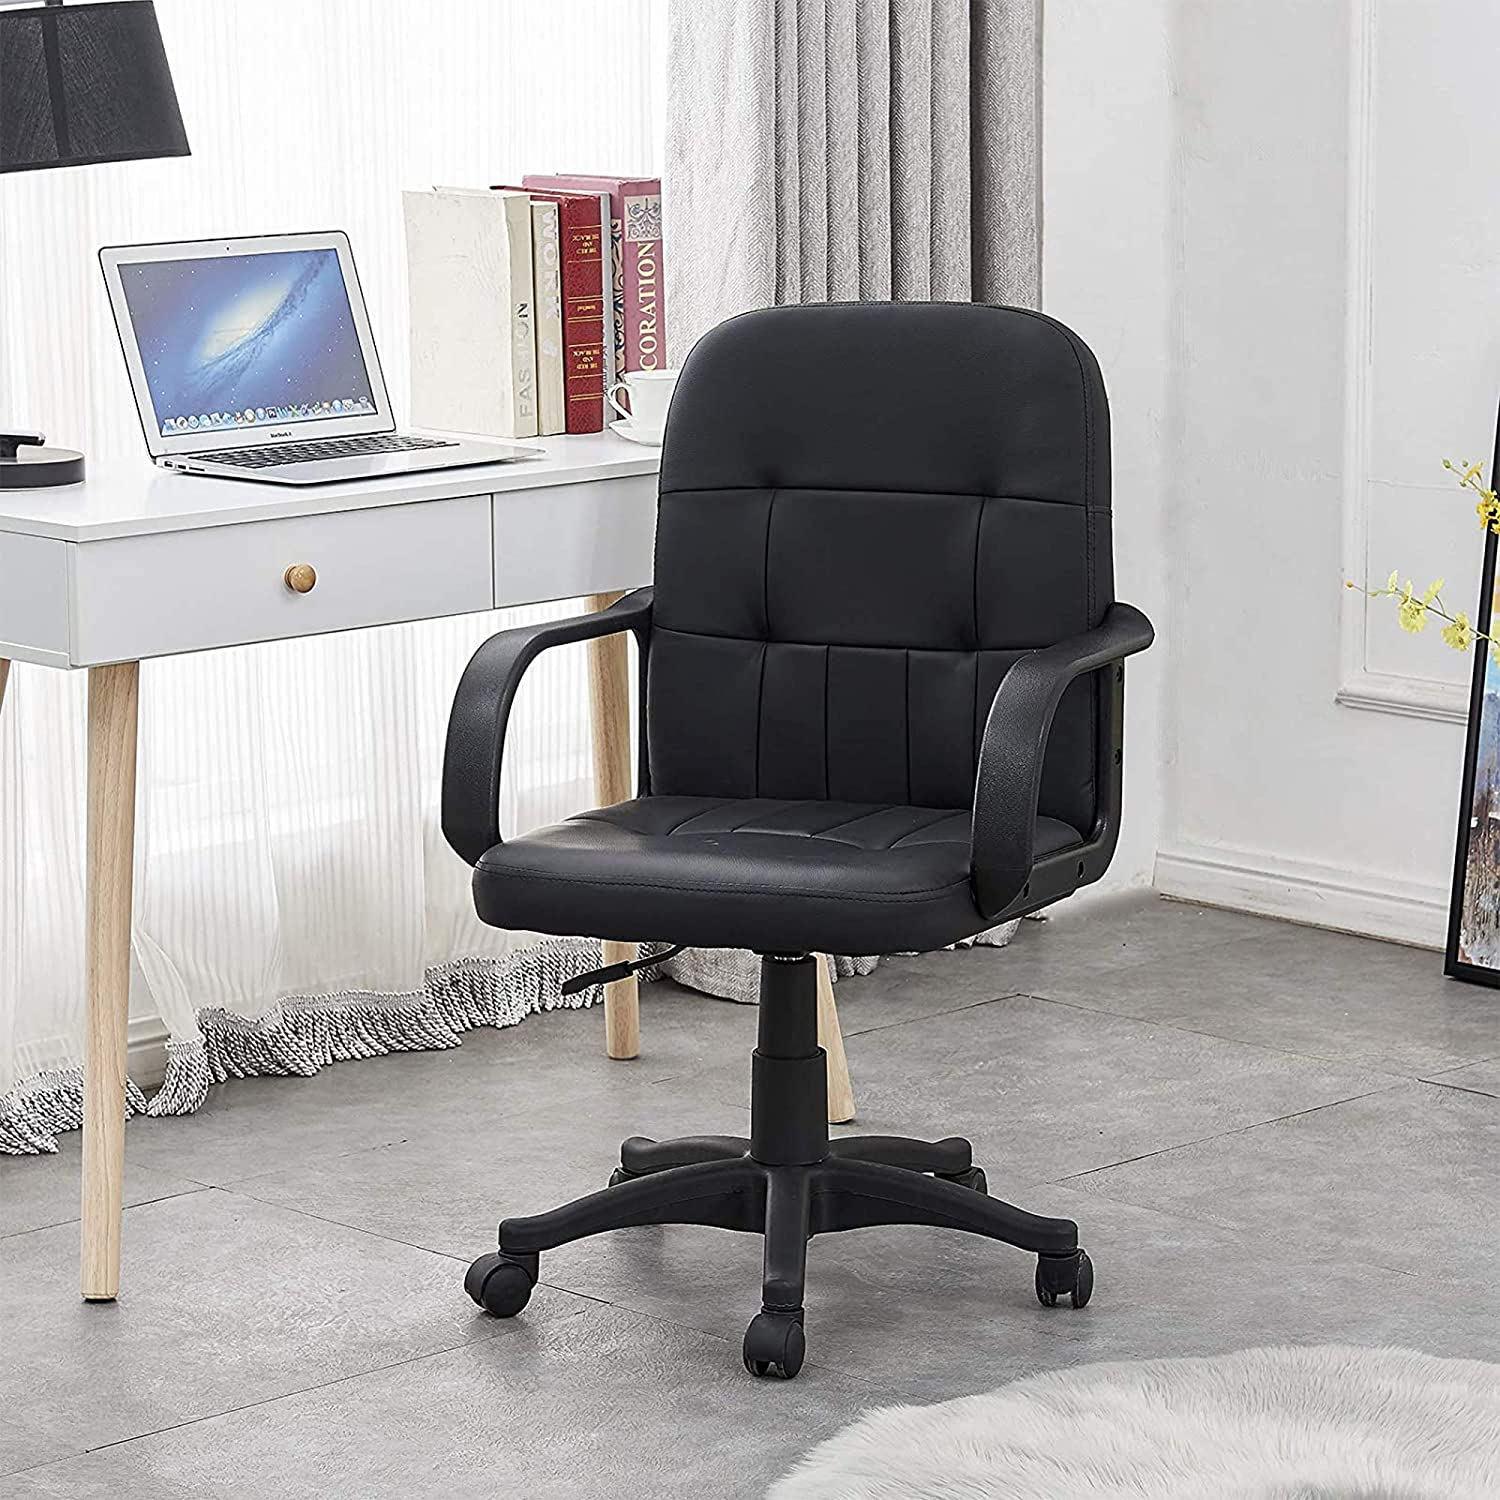 Tonvision Small Swivel Desk Chair With Armrest Mid Back Support Faux Leather Adjustable Lift Stool Computer Desk Workstation Office Chair Reception Black Checks Pattern Amazon Co Uk Kitchen Home